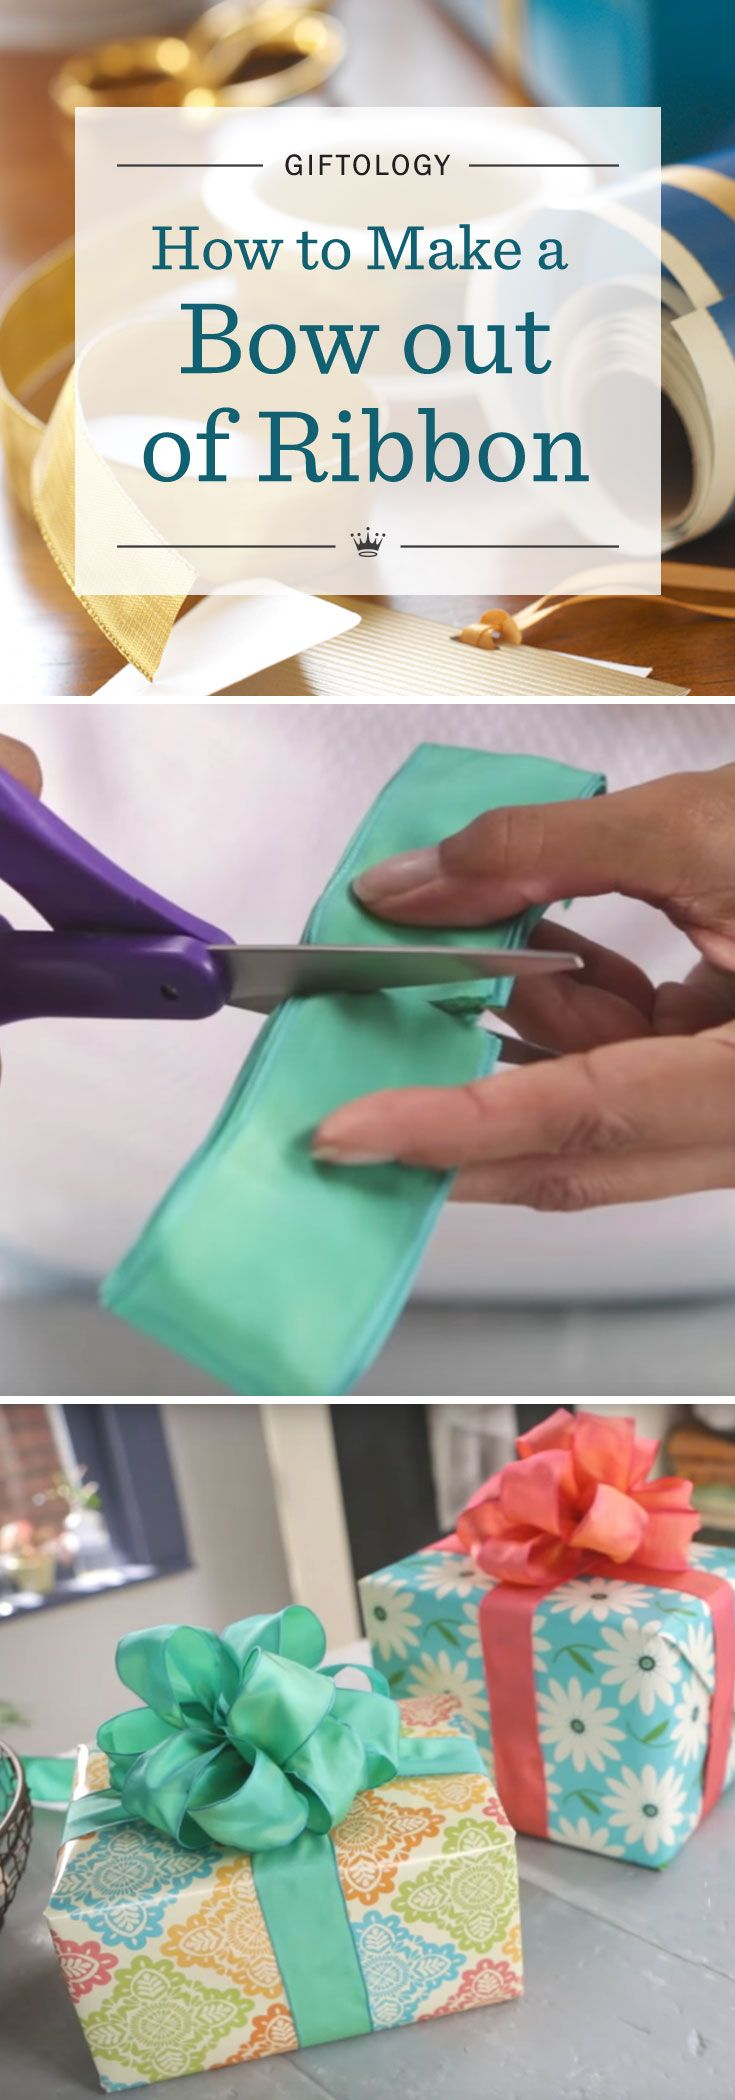 Giftology How to Make a Bow out